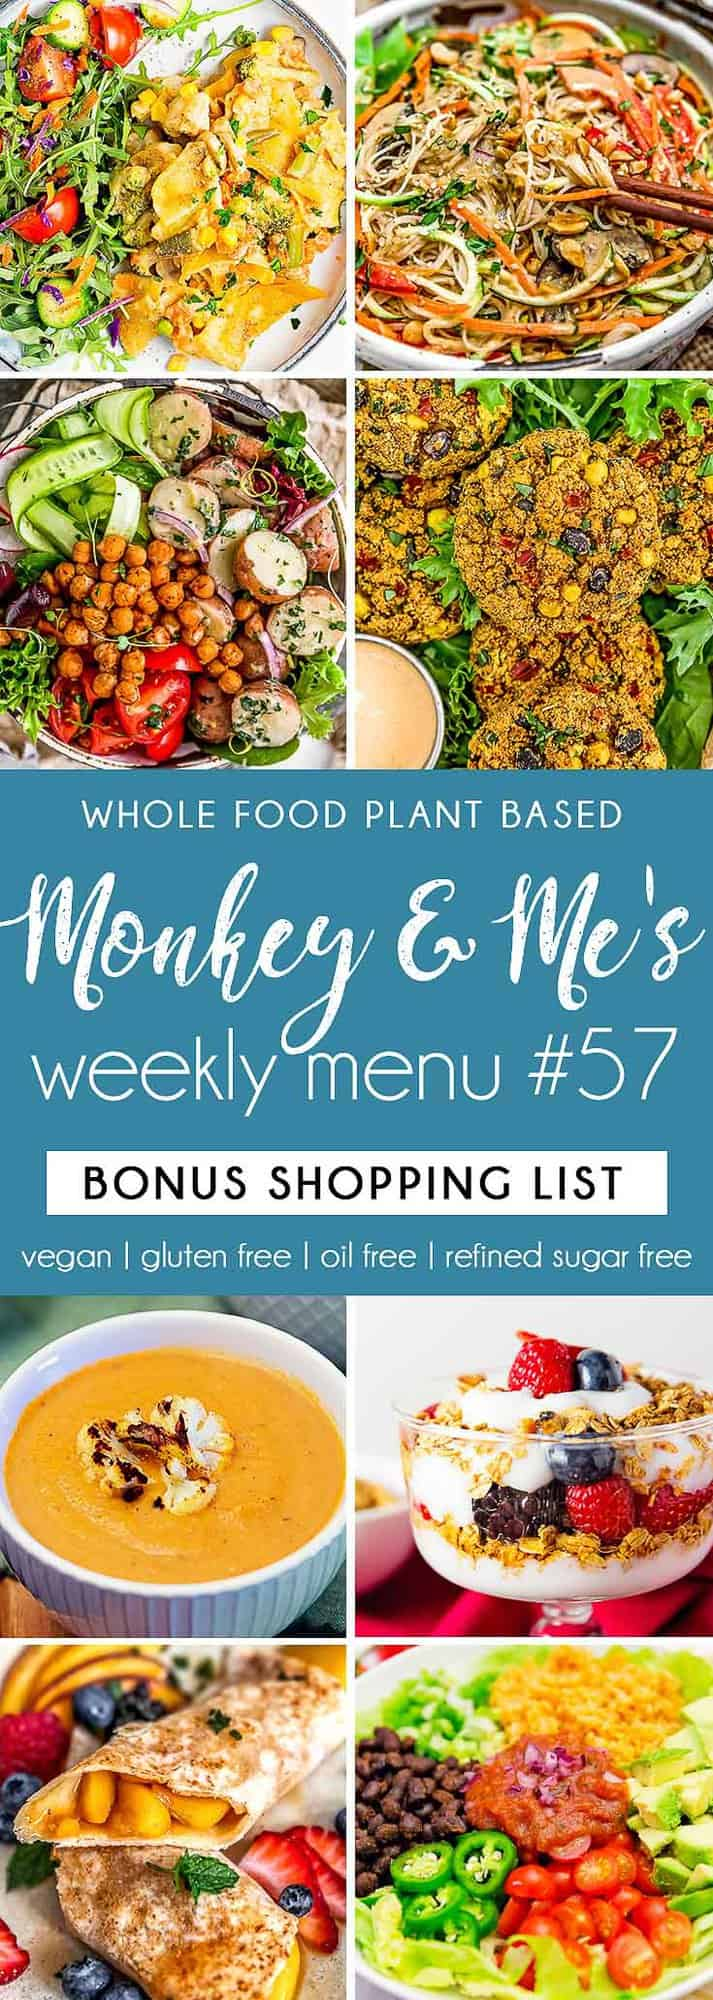 Monkey and Me's Menu 57 featuring 8 recipes